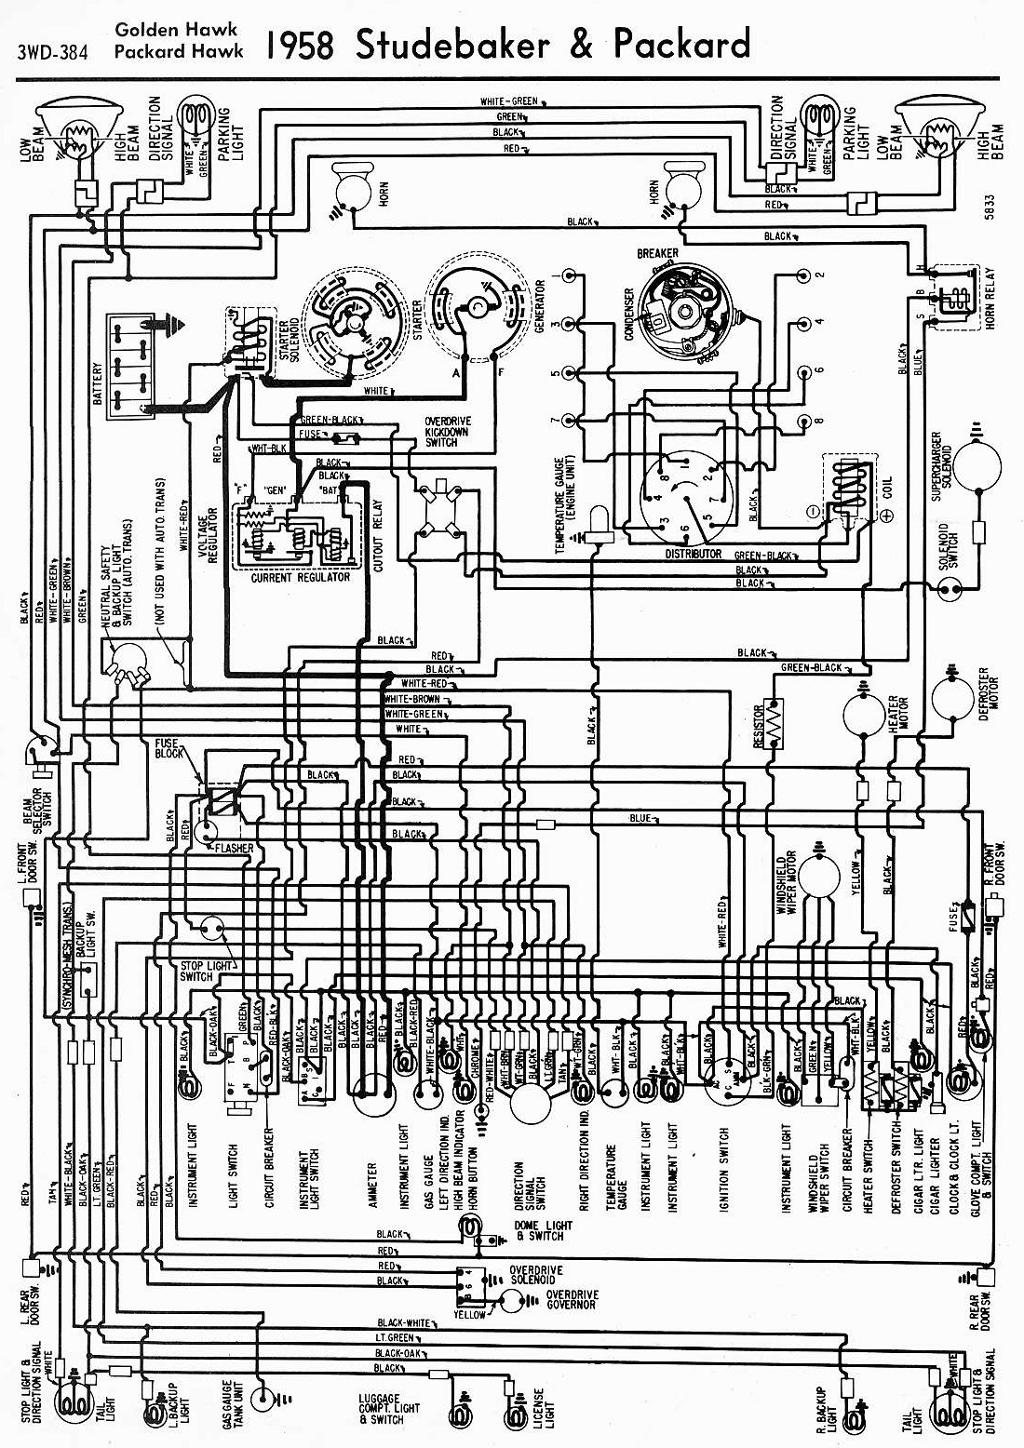 hight resolution of 1948 packard wiring diagram wiring diagram third level 1949 ford wiring diagram 1948 studebaker wiring diagram